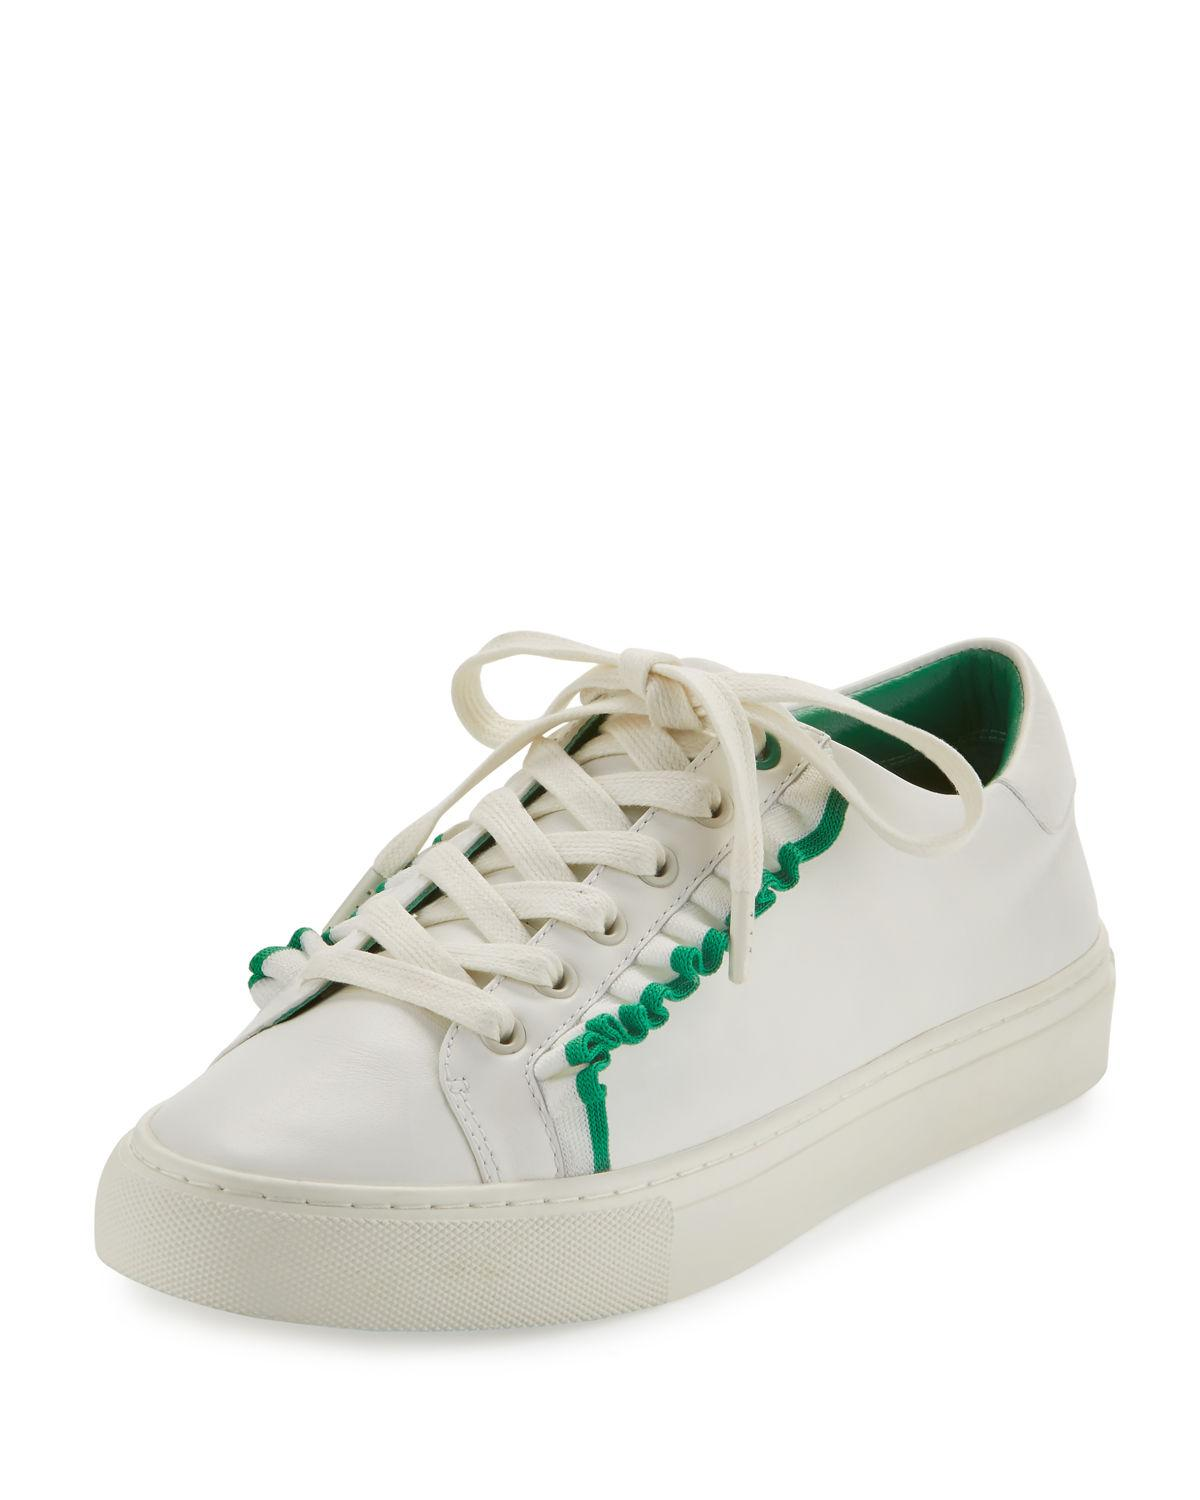 Tory Burch Ruffle Leather Low Top Sneaker In White Lyst